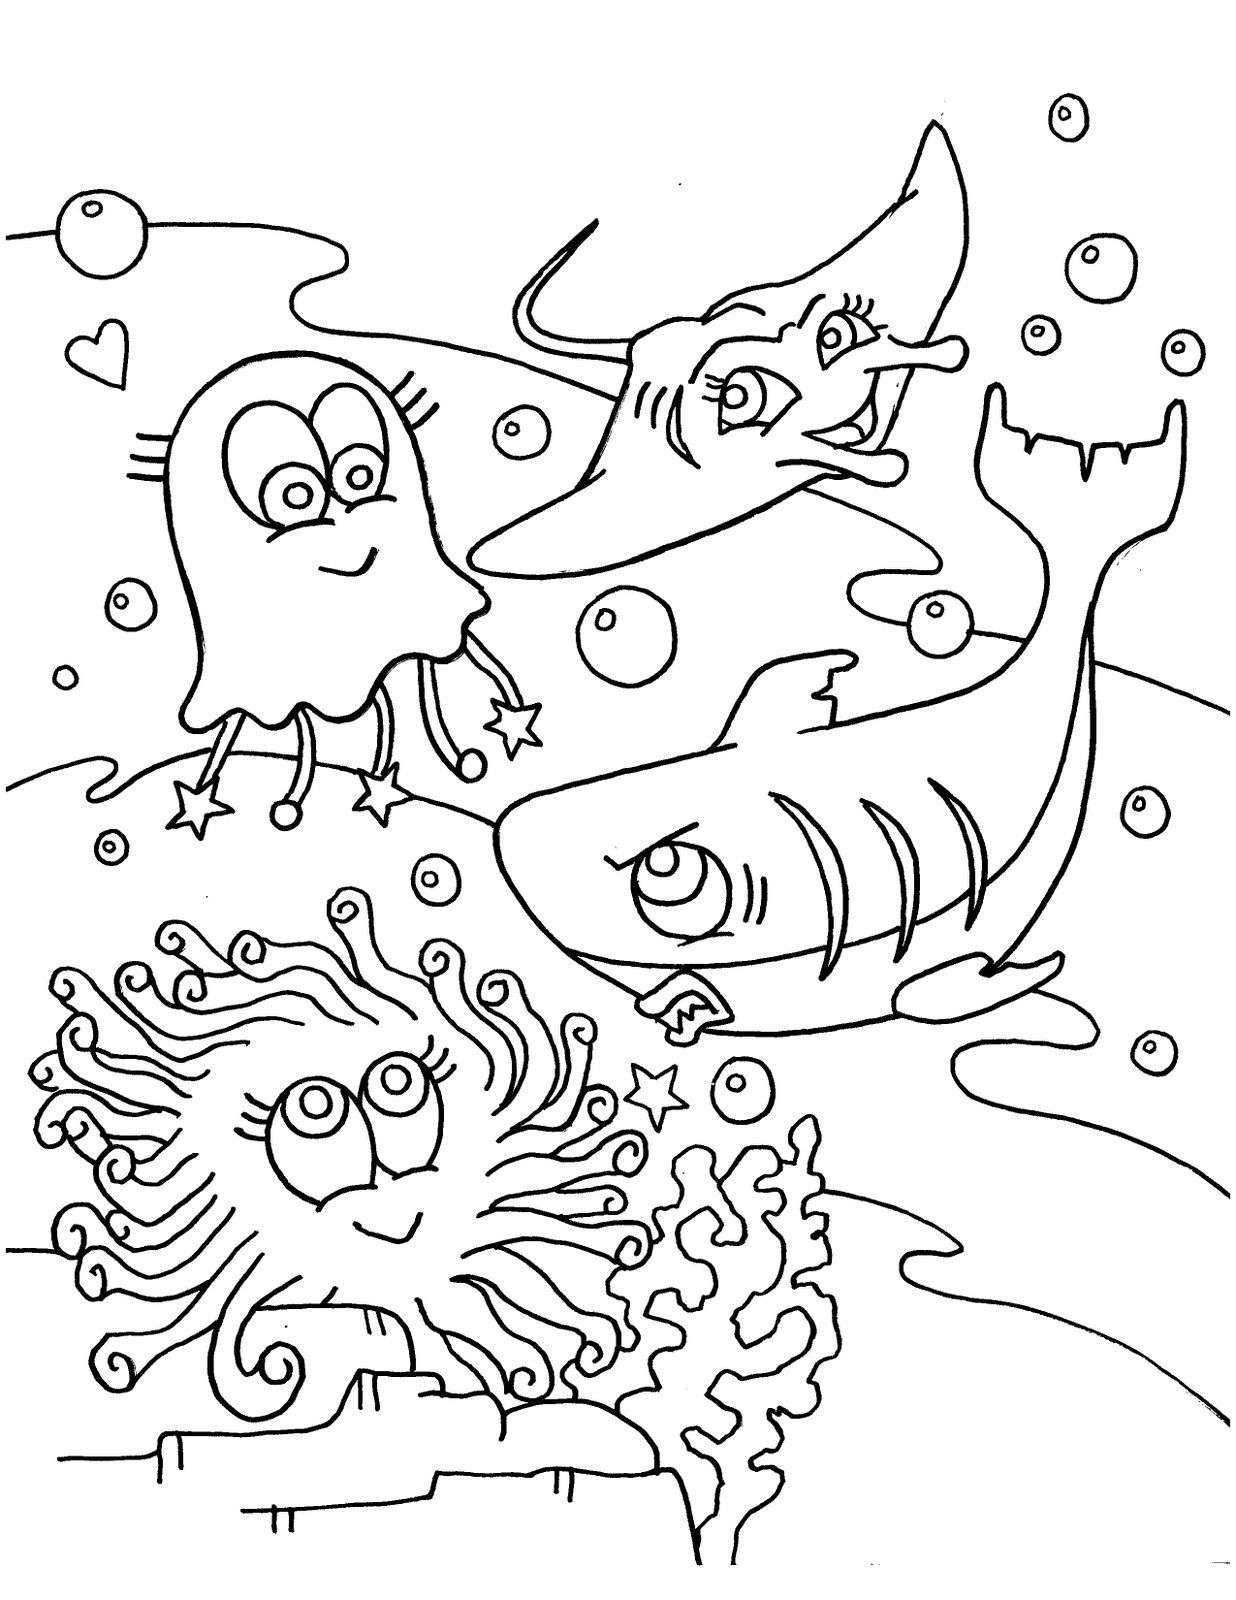 under the sea worksheets | under the sea colouring pages - under the ...